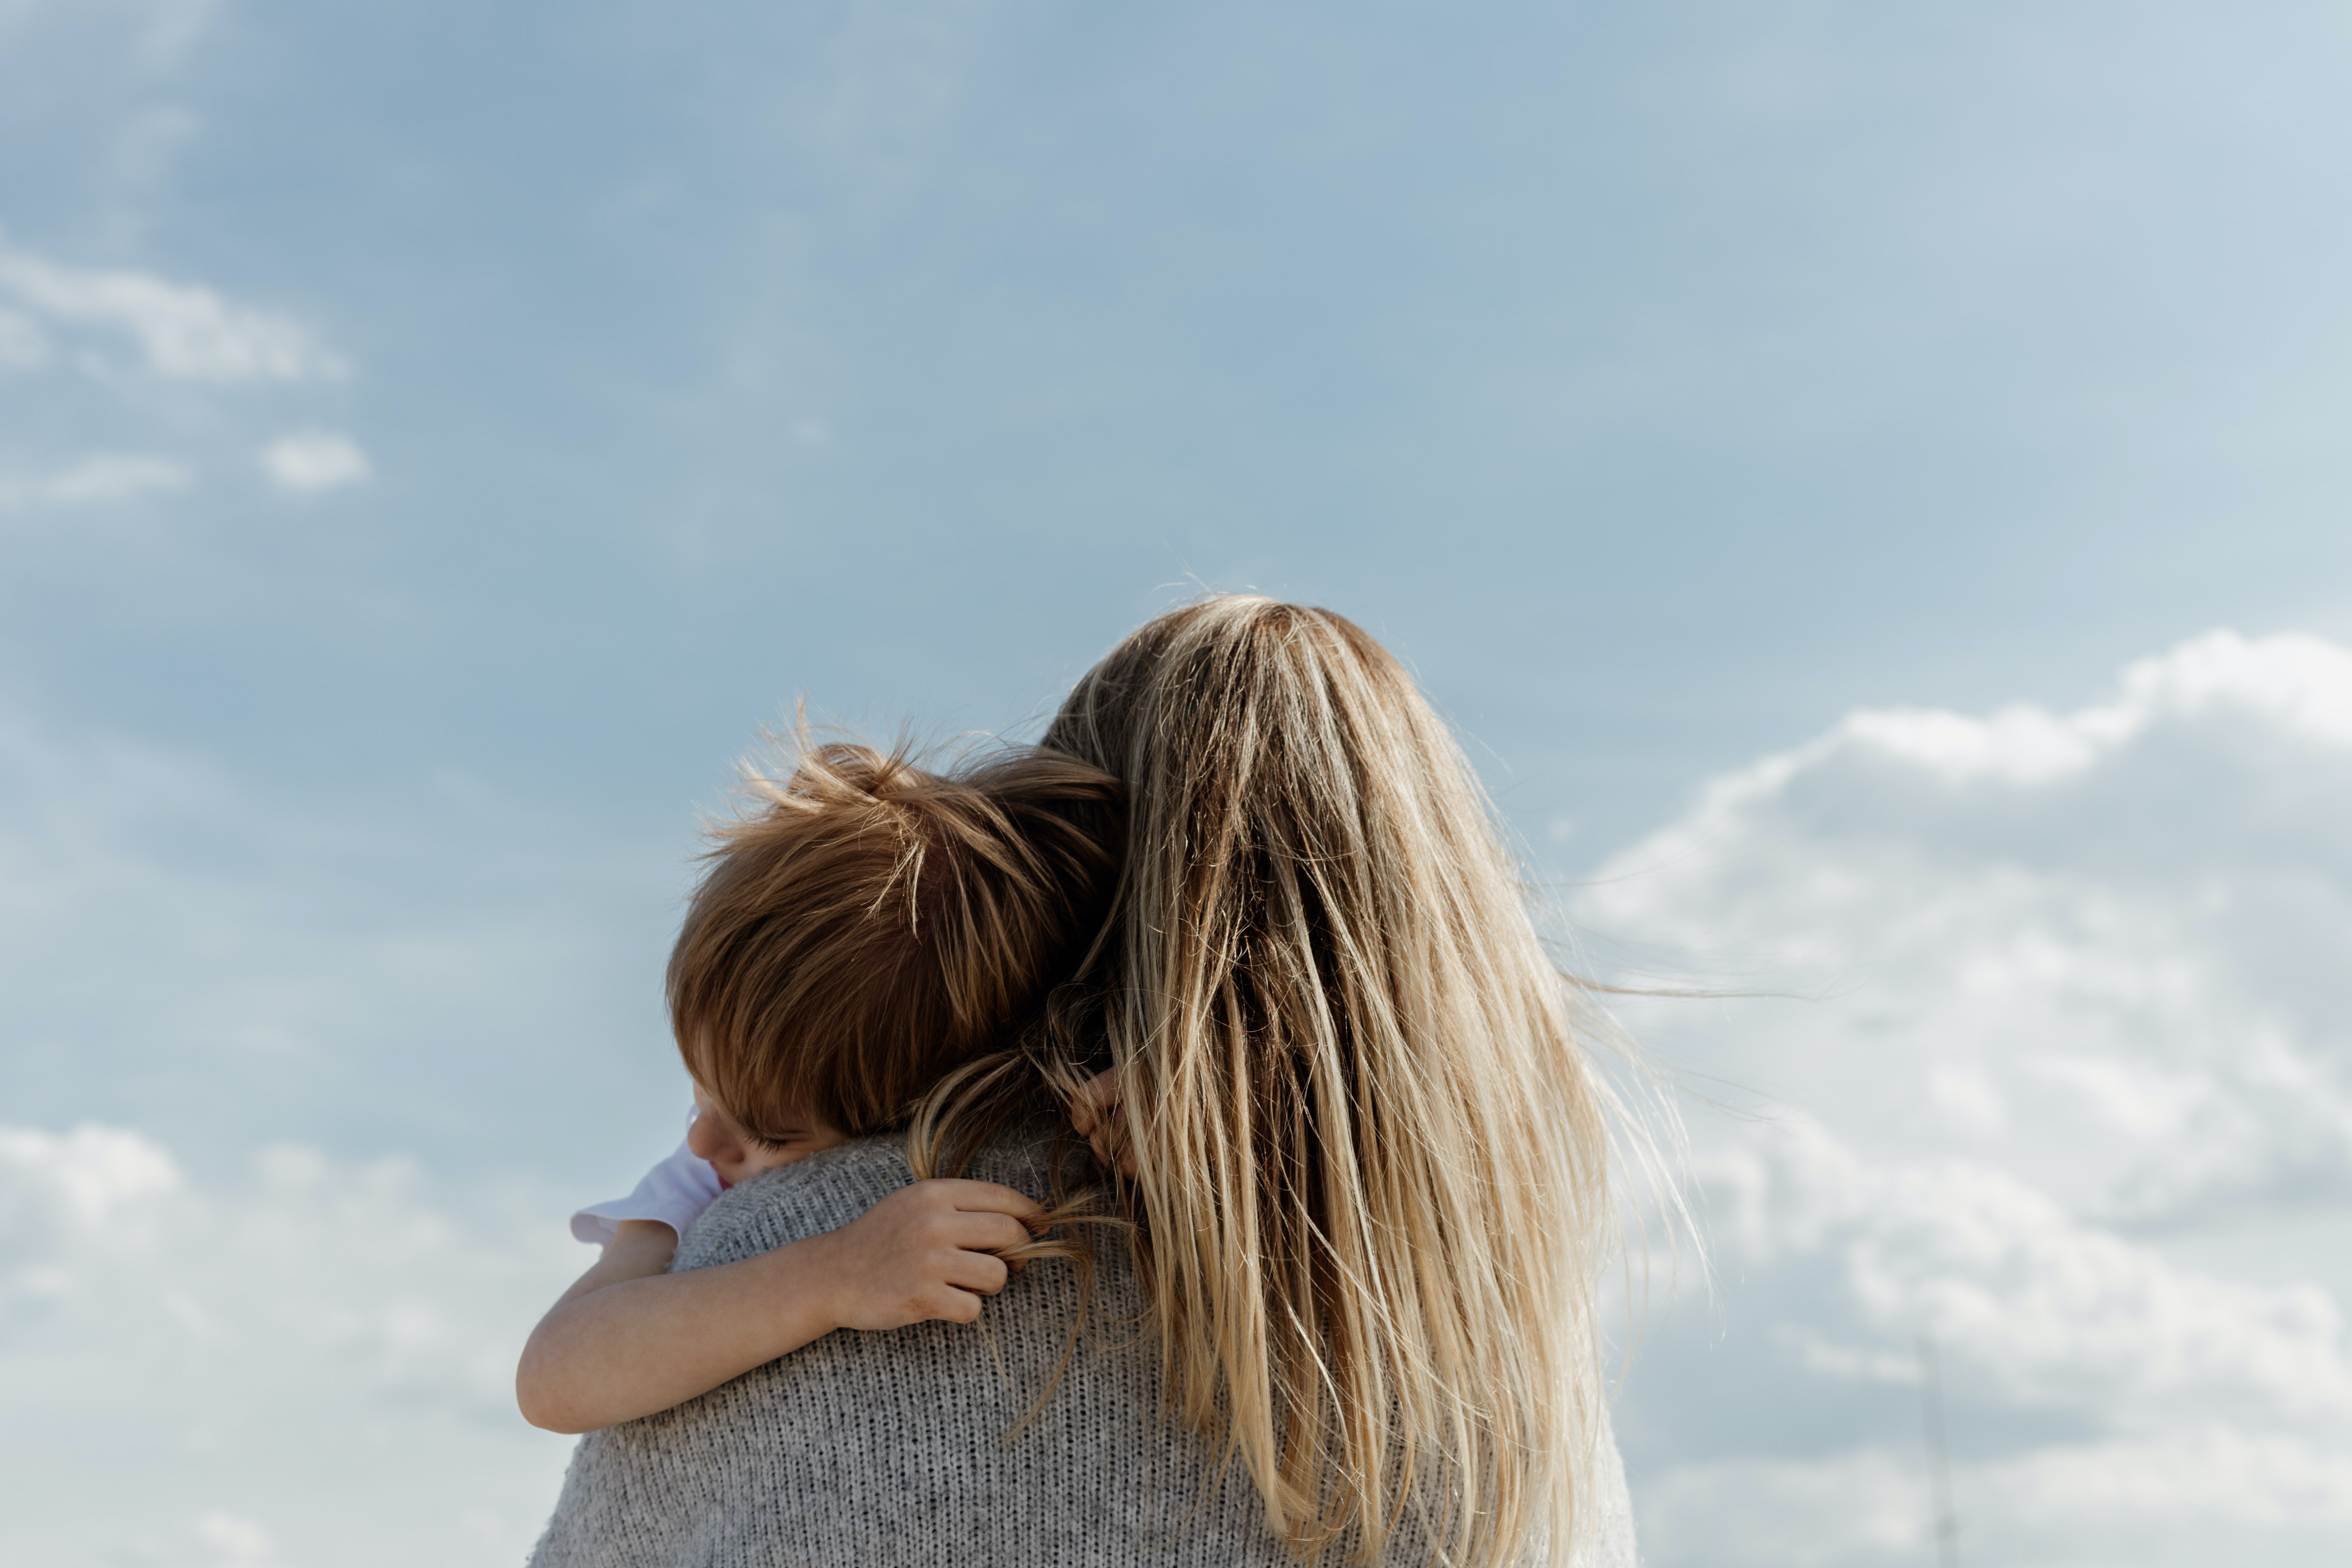 A mom holds her child, both of their faces obscured. The sky is bright blue behind them.